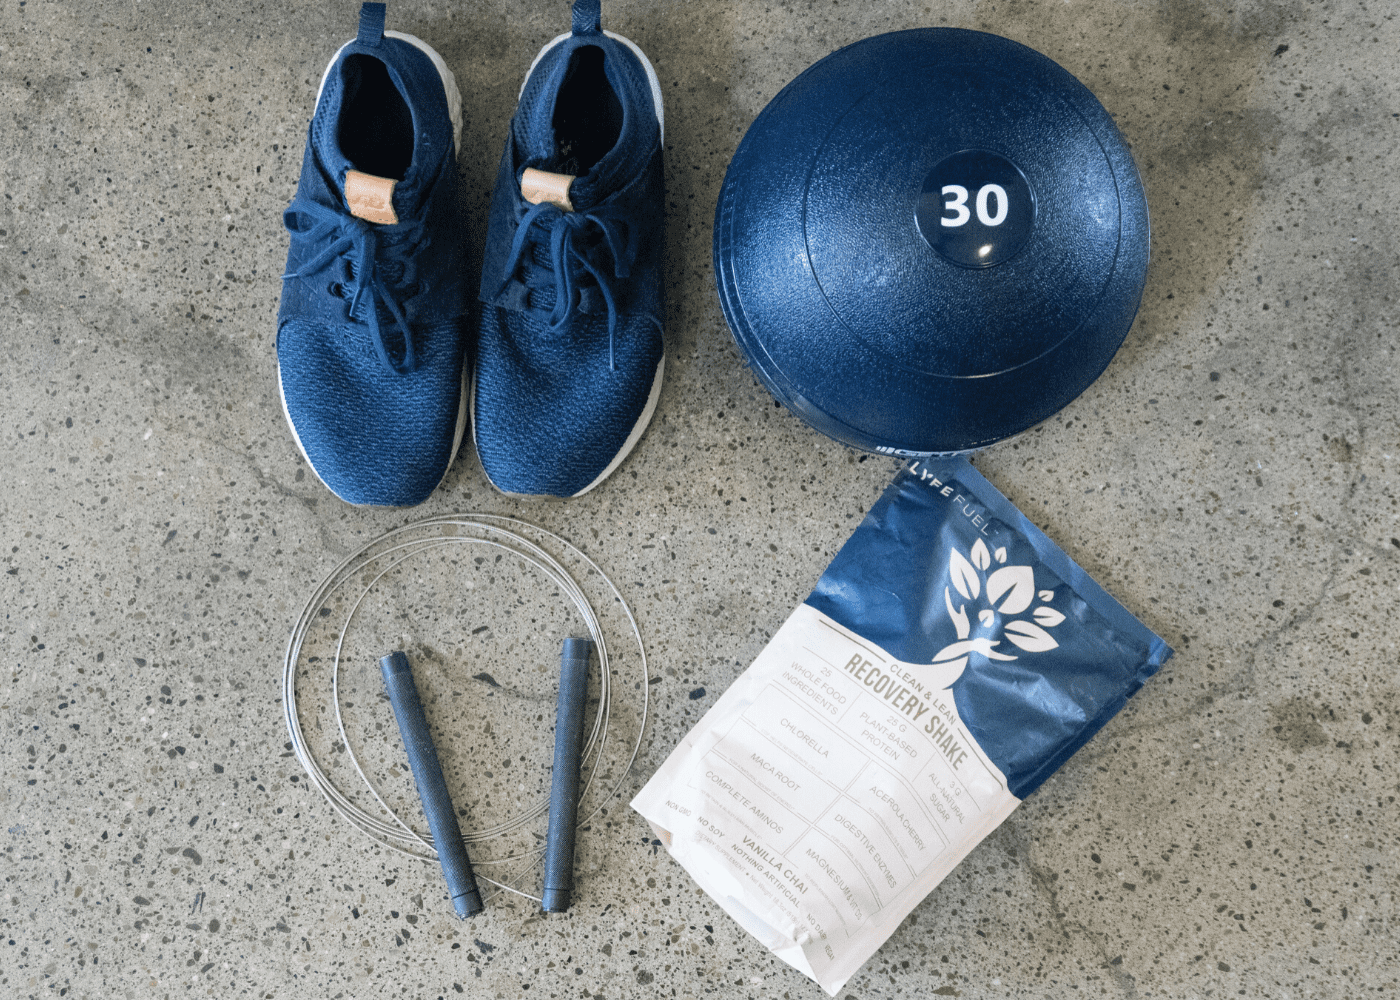 Working out at home? Switch up your routine with basic home gym essentials